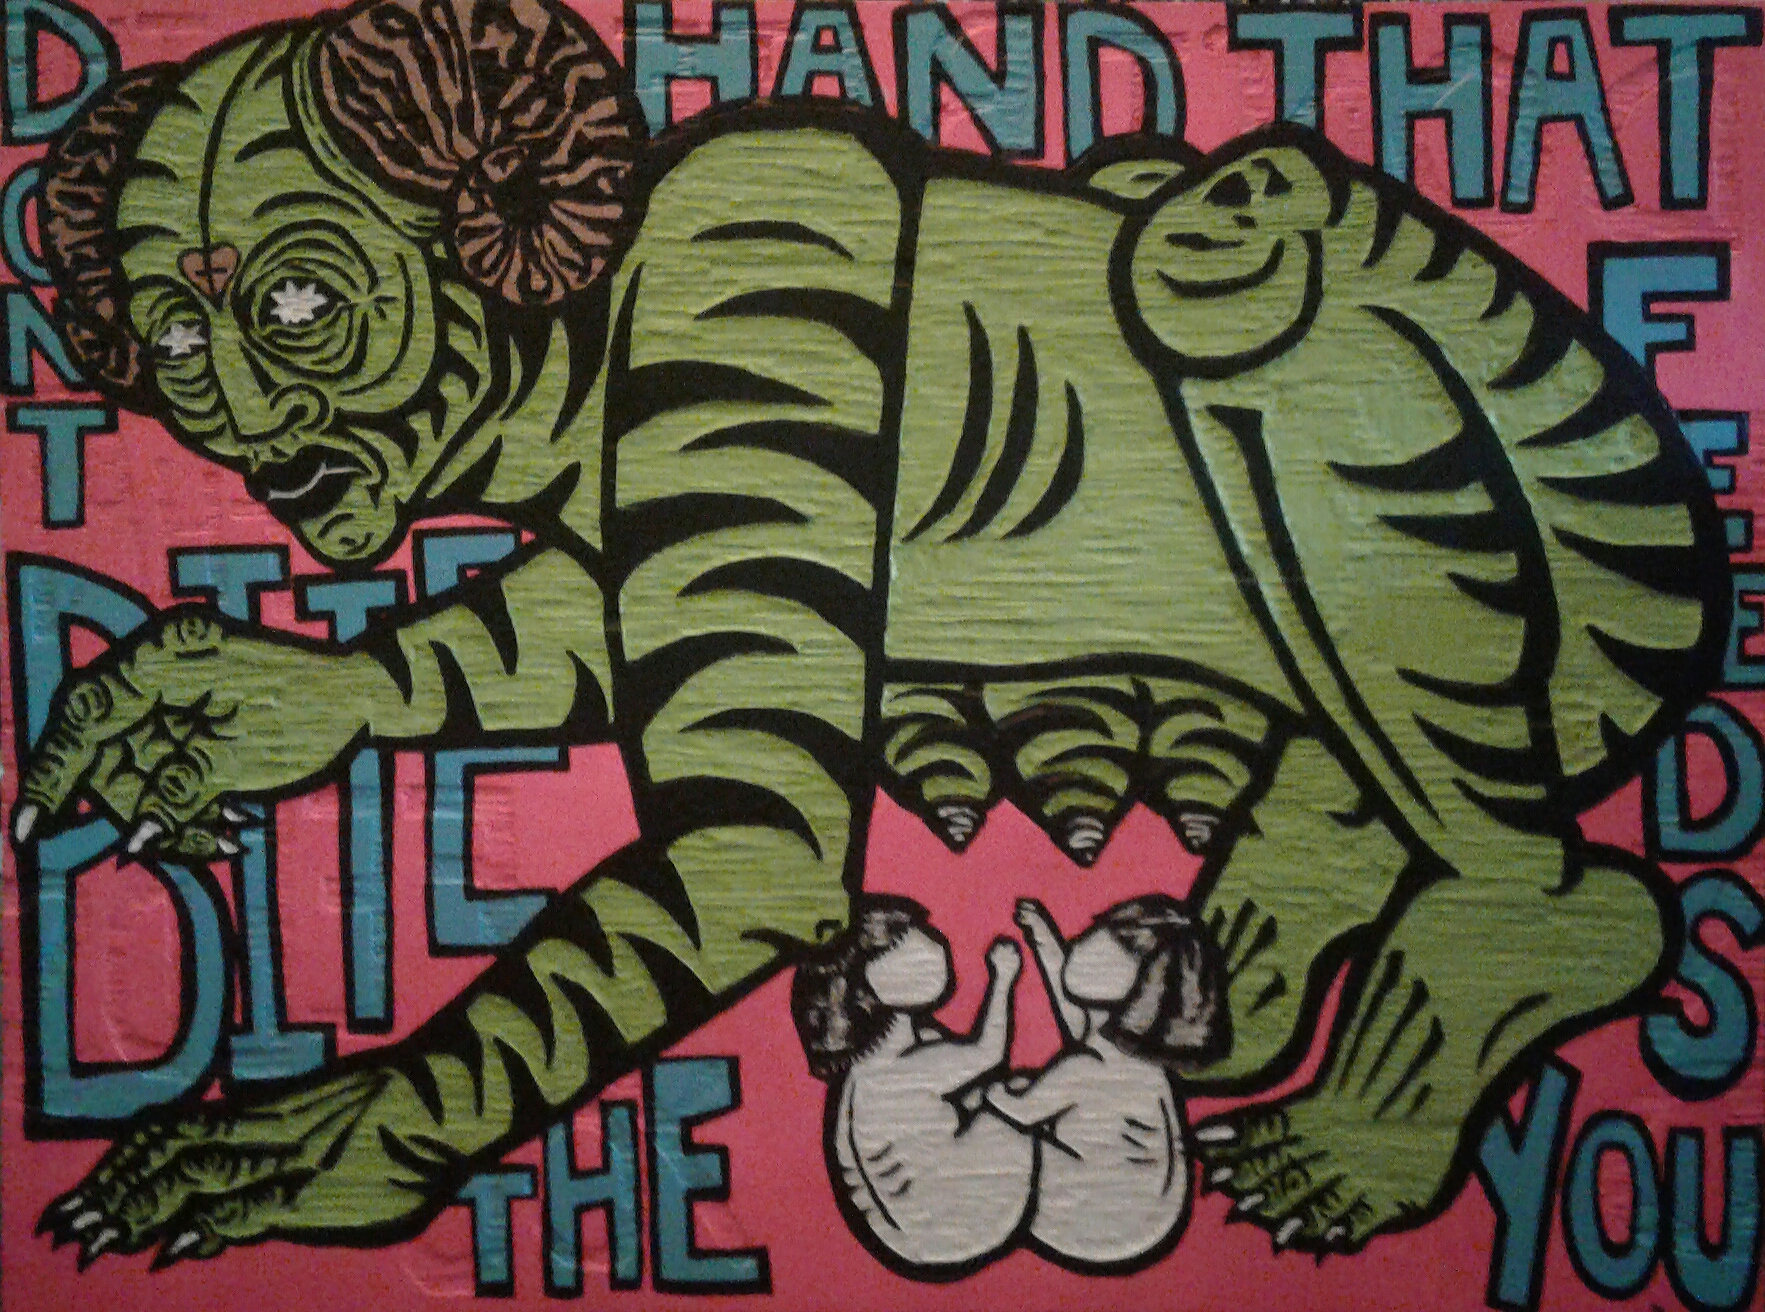 """""""Don't Bite The Hand That Feeds You"""" by Cori Hills, Acrylic paint, spray paint on hand-carved woodcut, 4x3ft, 2017, $3500 (Prints unavailable)"""